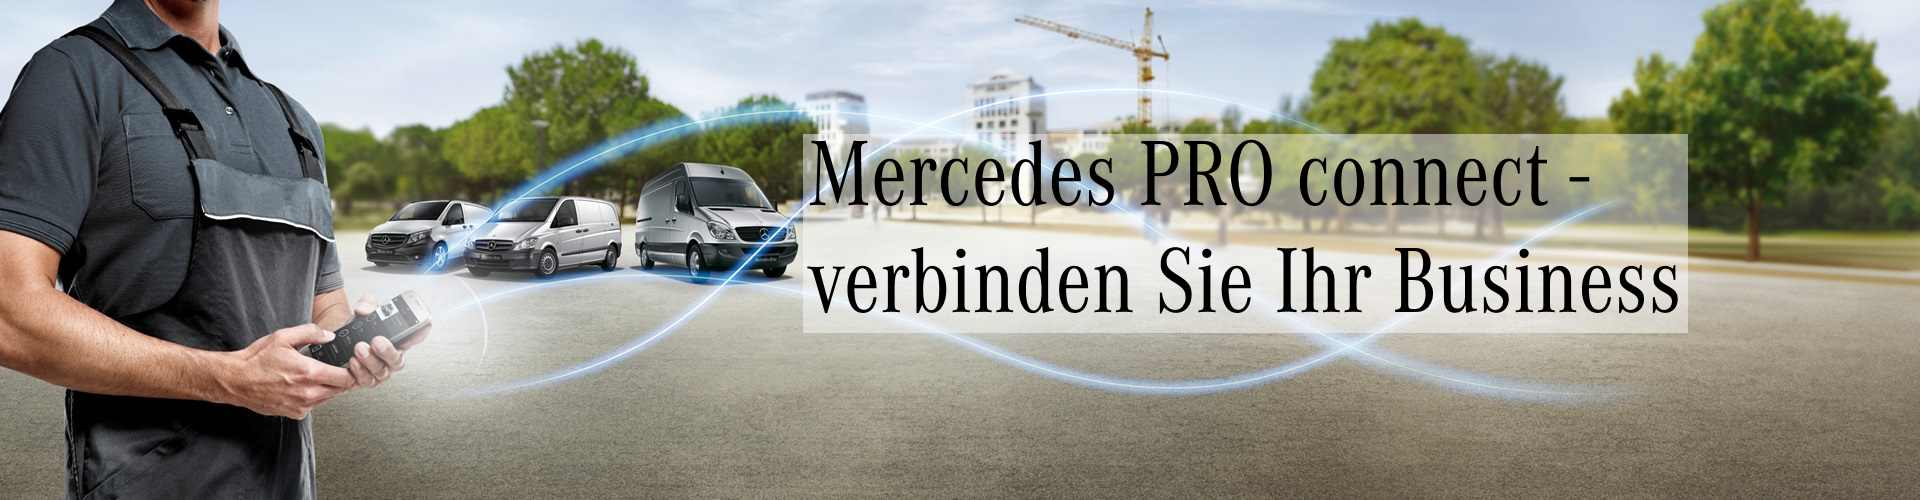 Foto Mercedes PRO connect